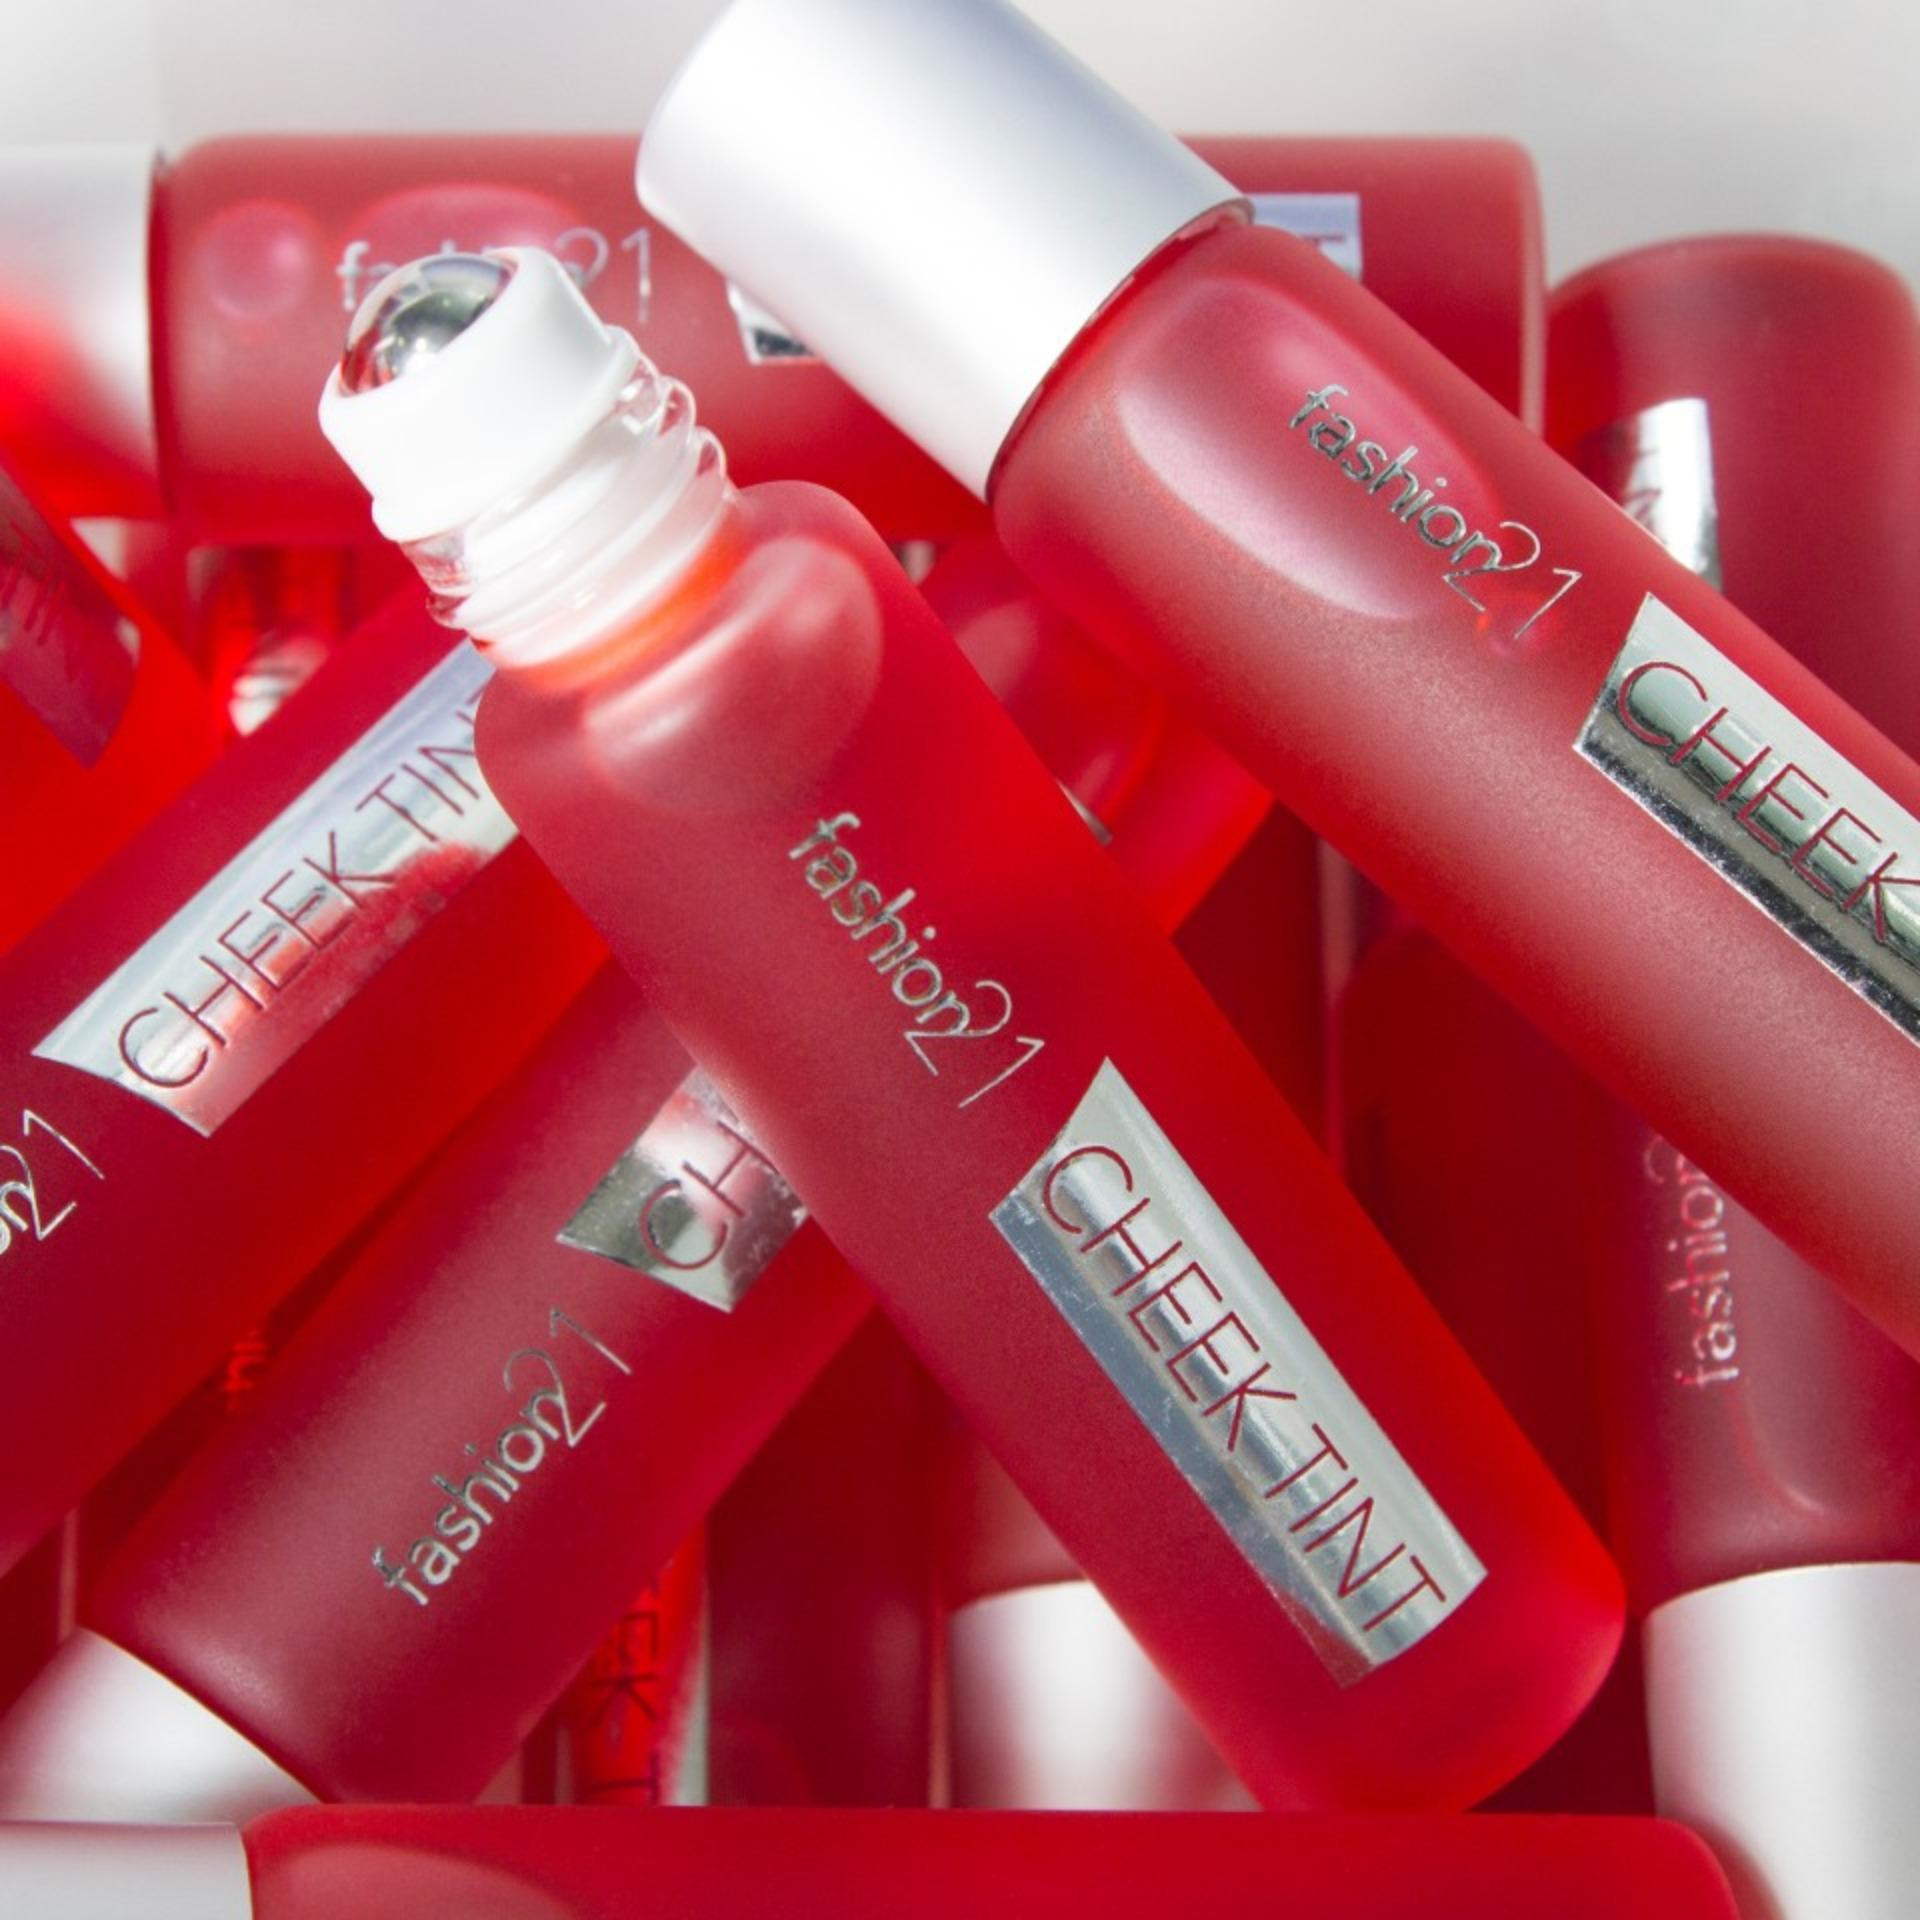 Fashion21 Lip & Cheek Tint By Fashion21_ph.